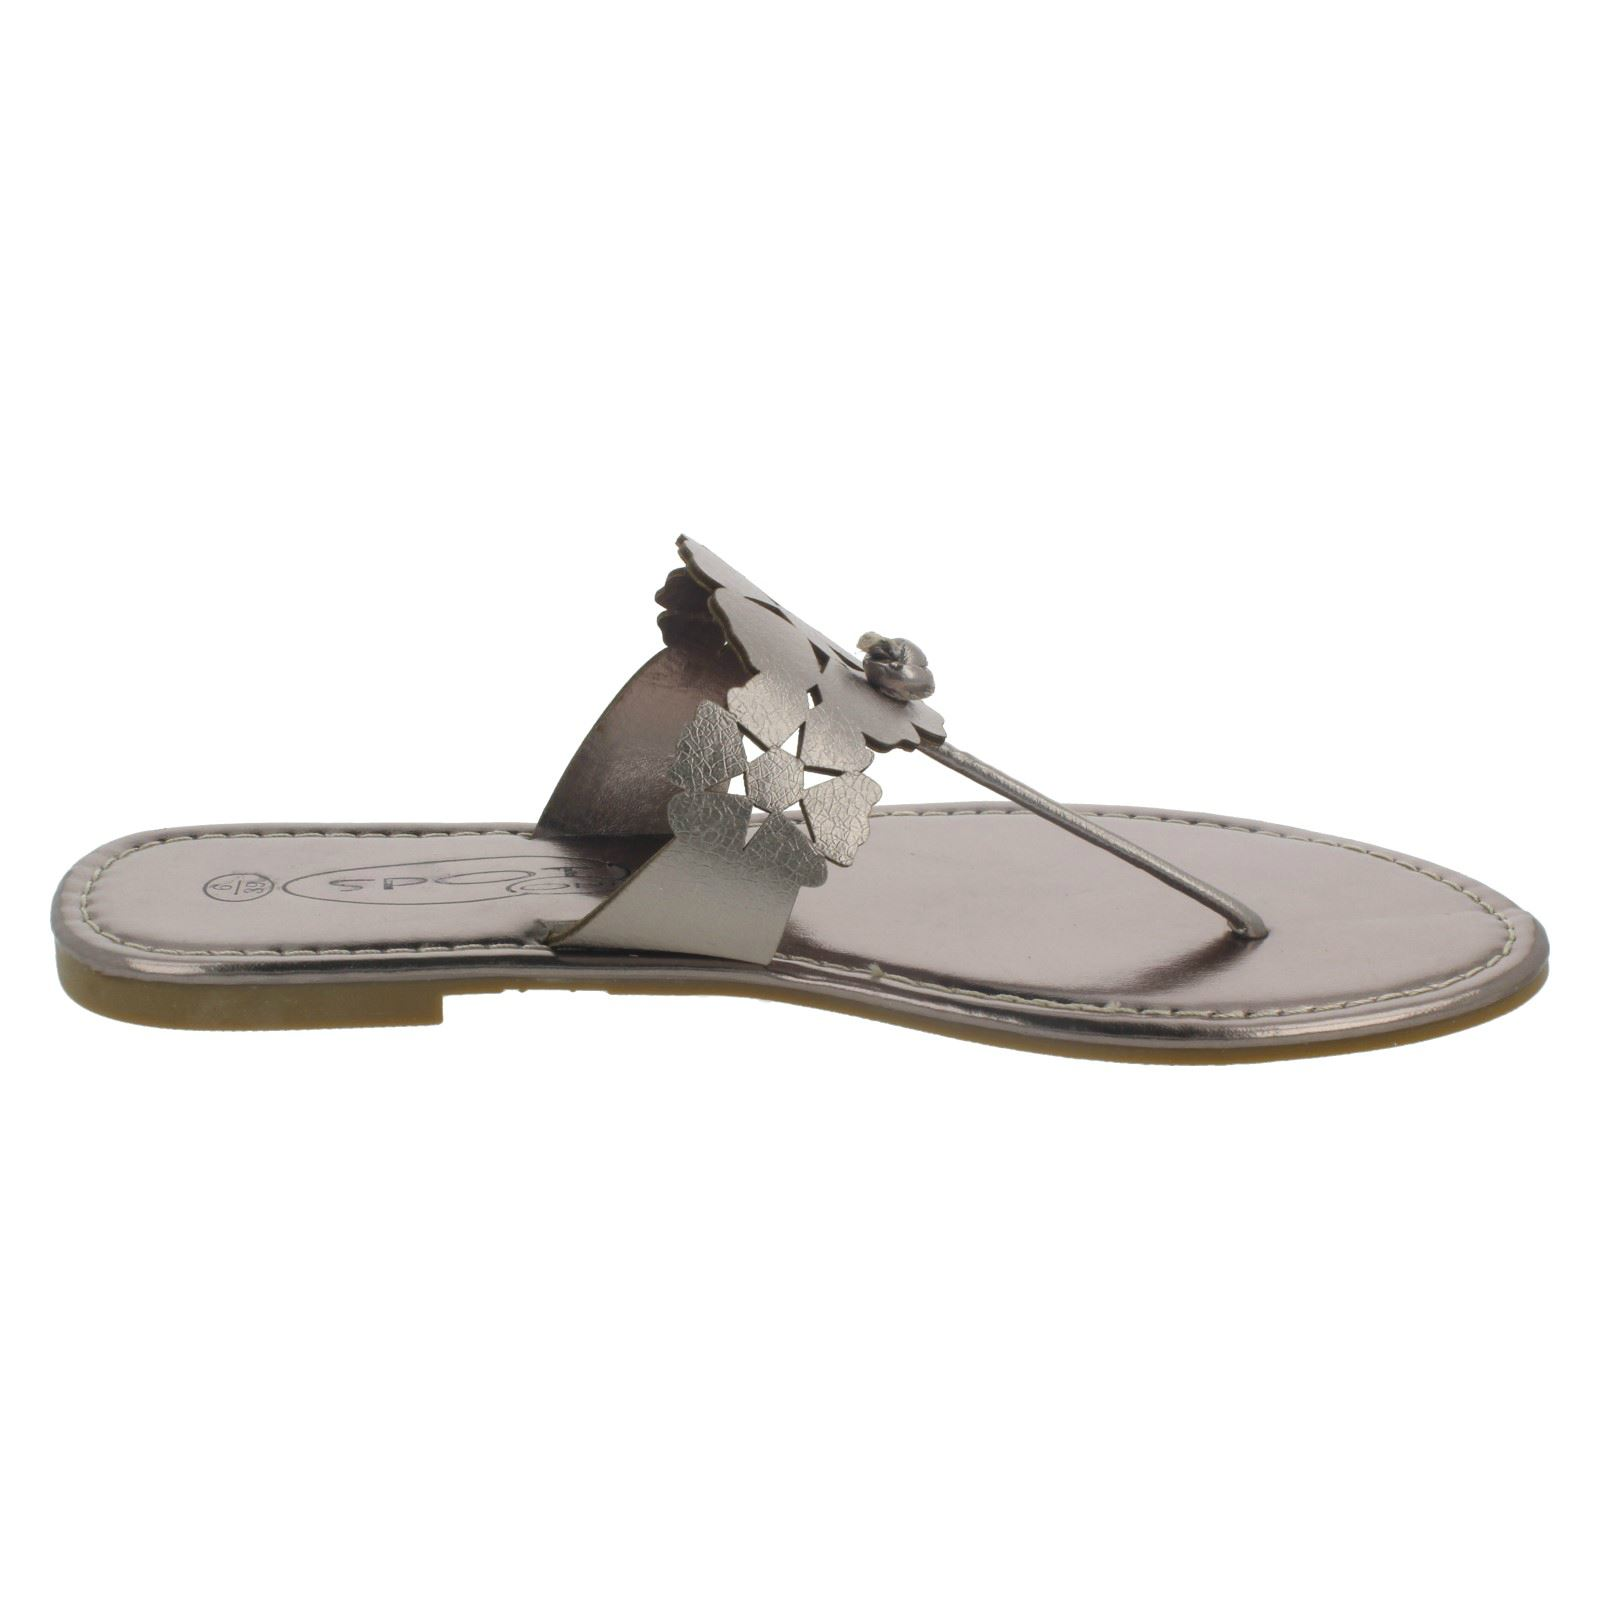 Damas Spot on Flat Sandalias Toe Post Con Diseño De Flores-F0391